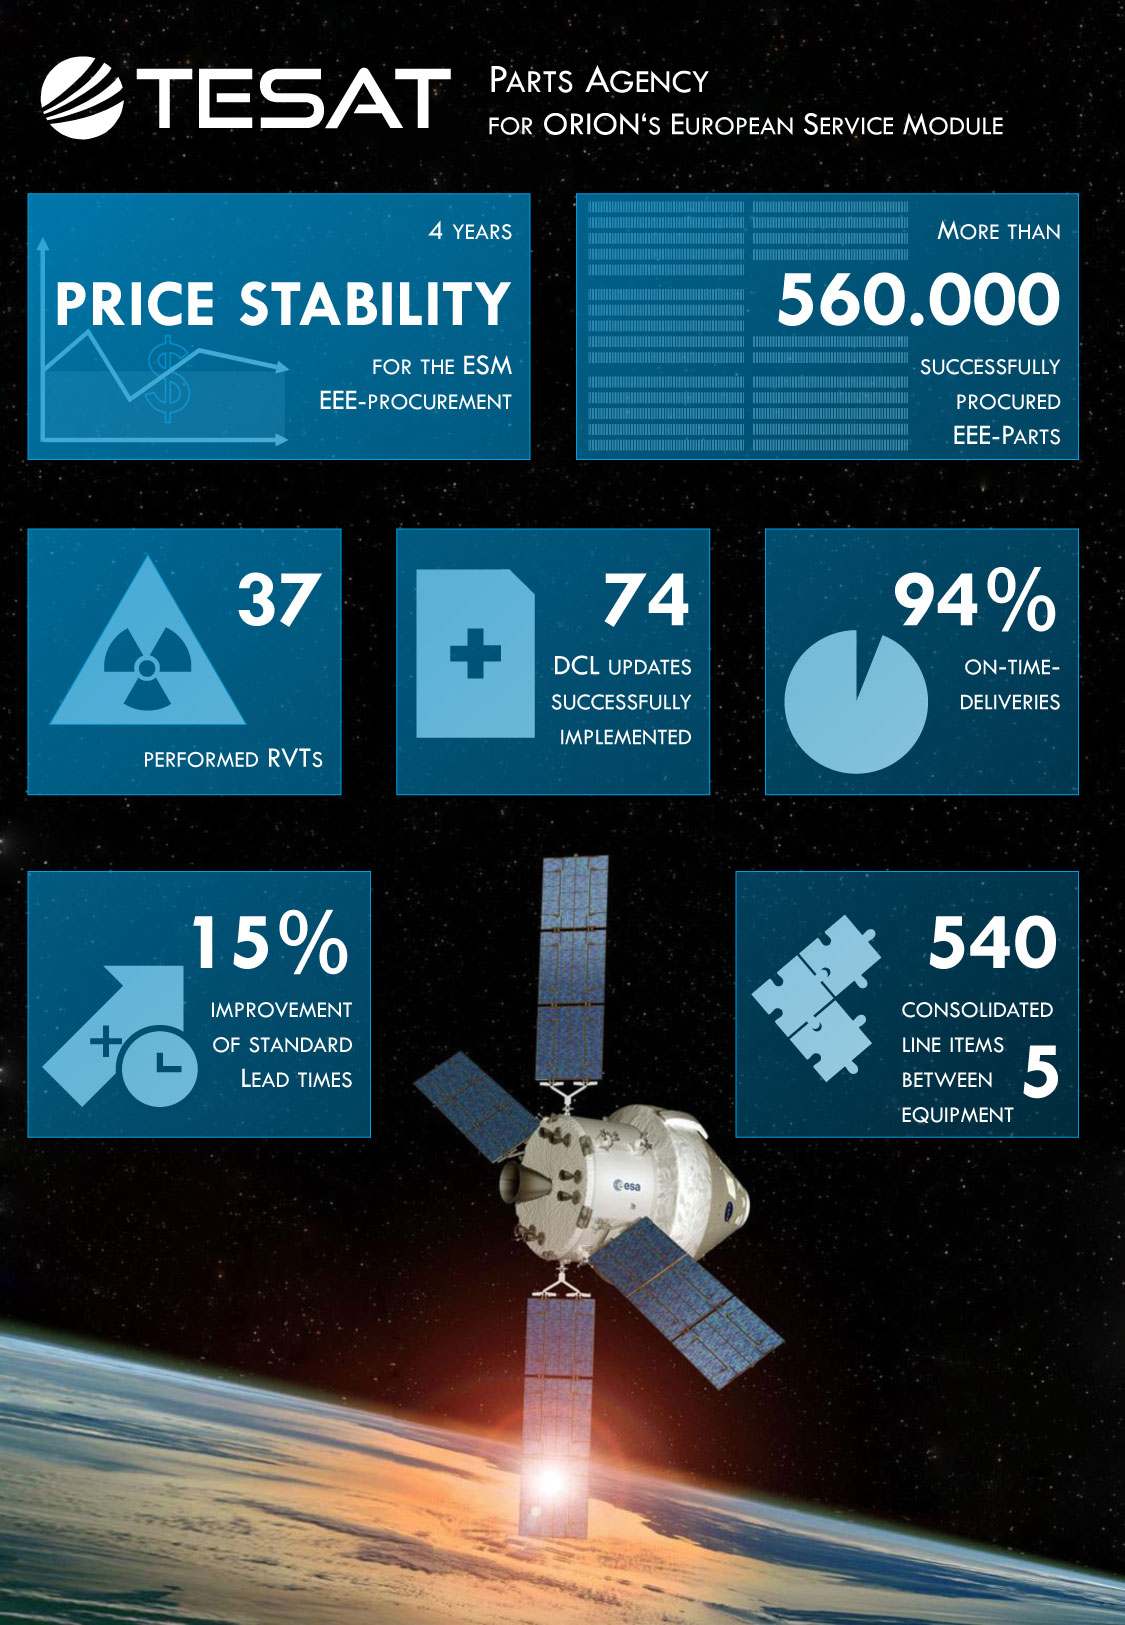 181217 orion parts infographic